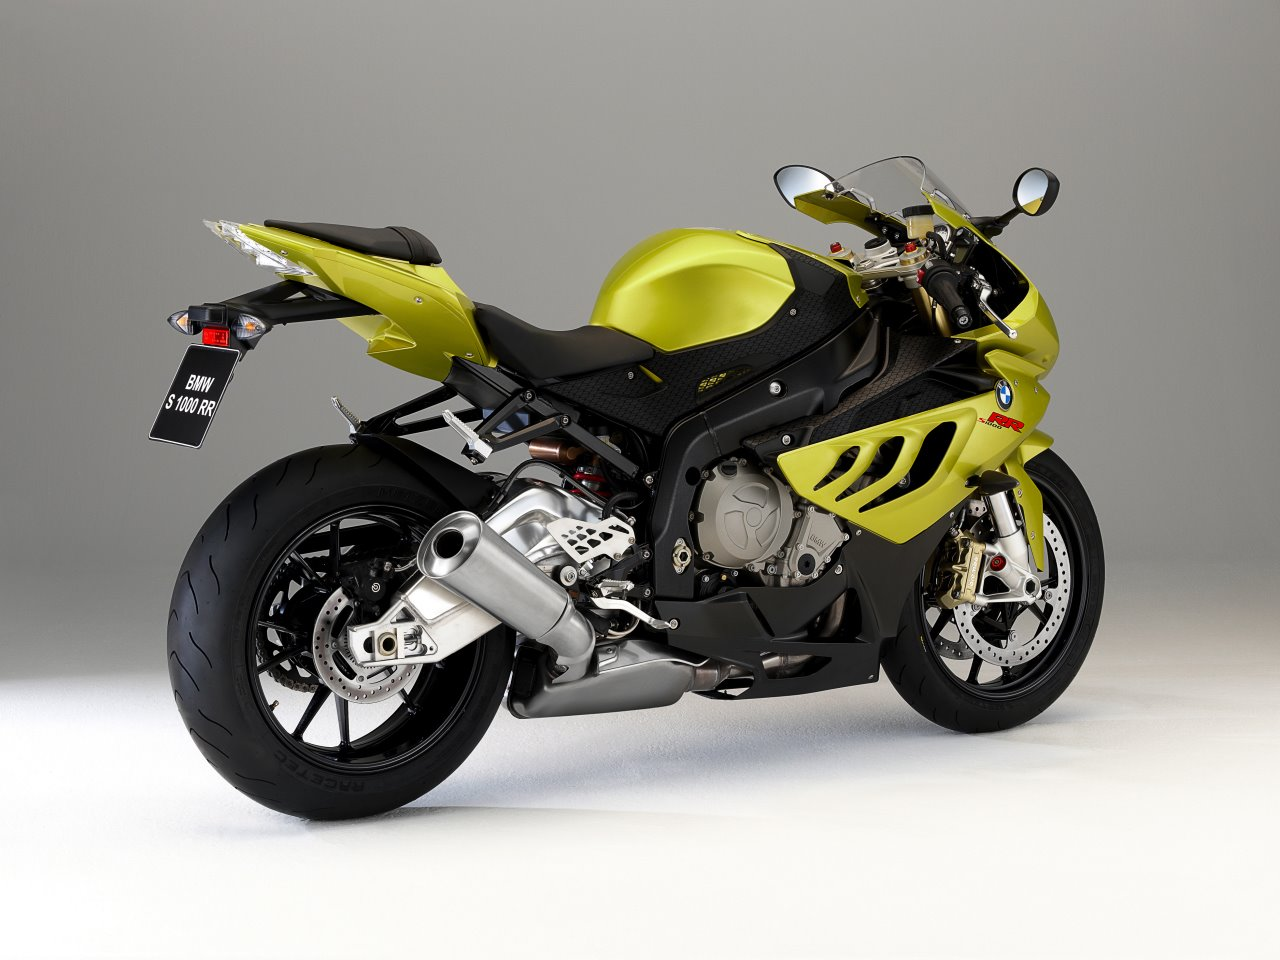 Brand New Bmw Ss1000r Sportbike Motorcycle Photo Of The Day